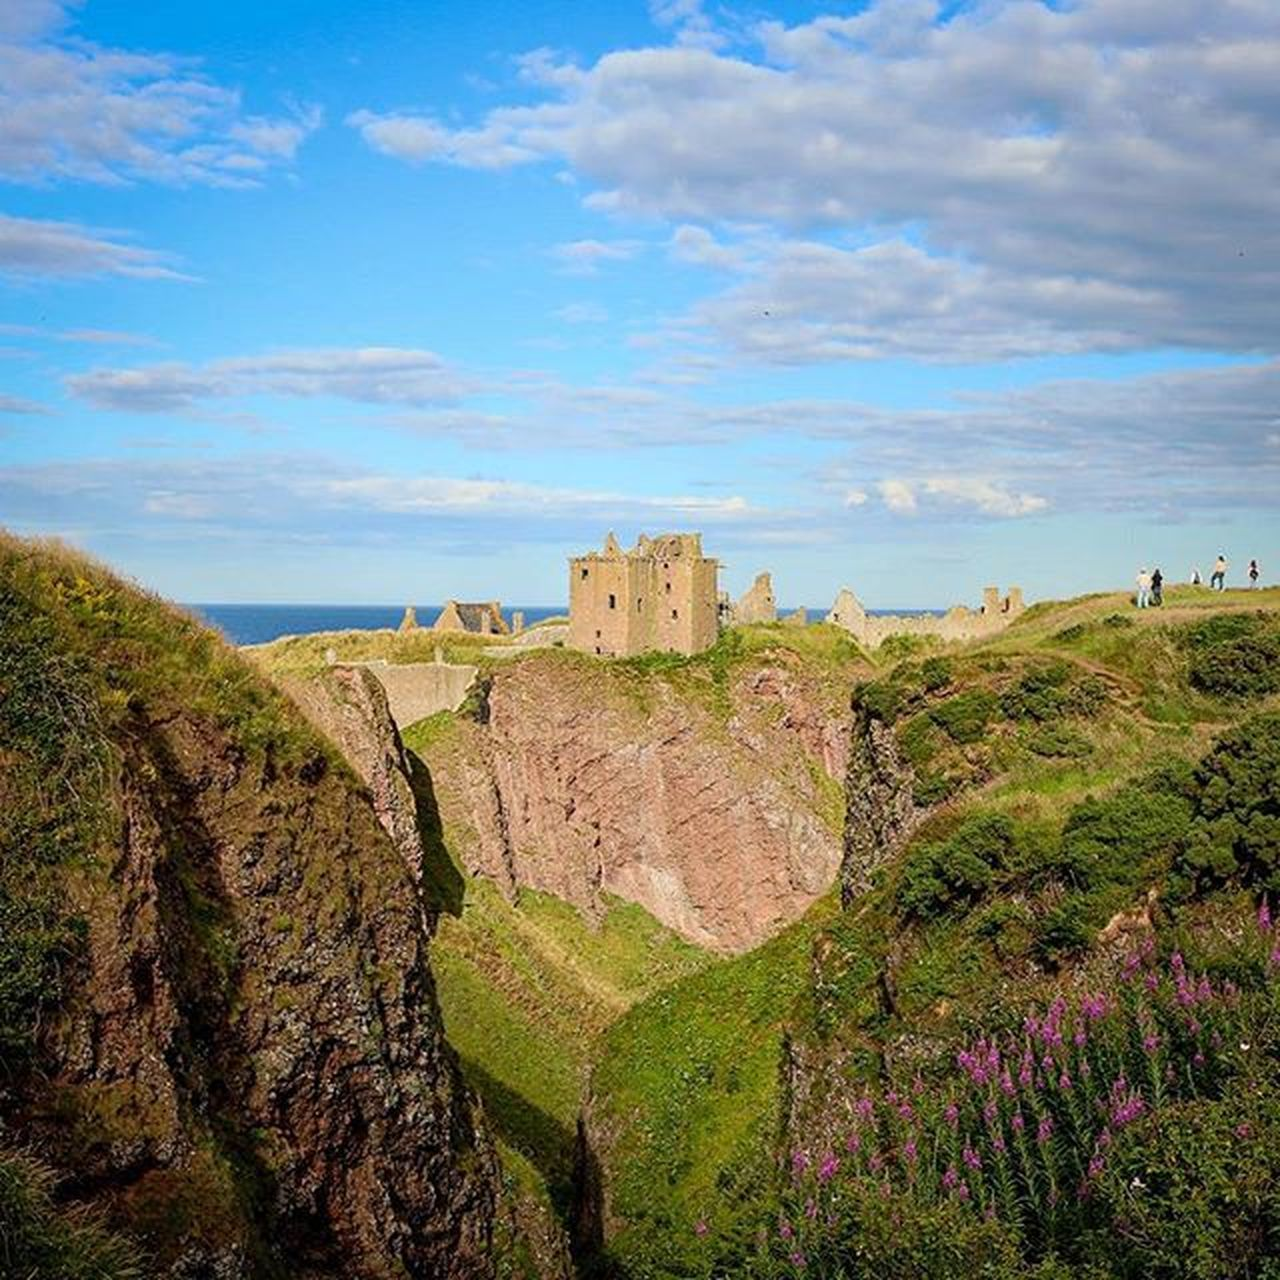 history, architecture, fort, castle, built structure, rock - object, sky, travel destinations, ancient, day, old ruin, building exterior, nature, scenics, cliff, outdoors, ancient civilization, no people, beauty in nature